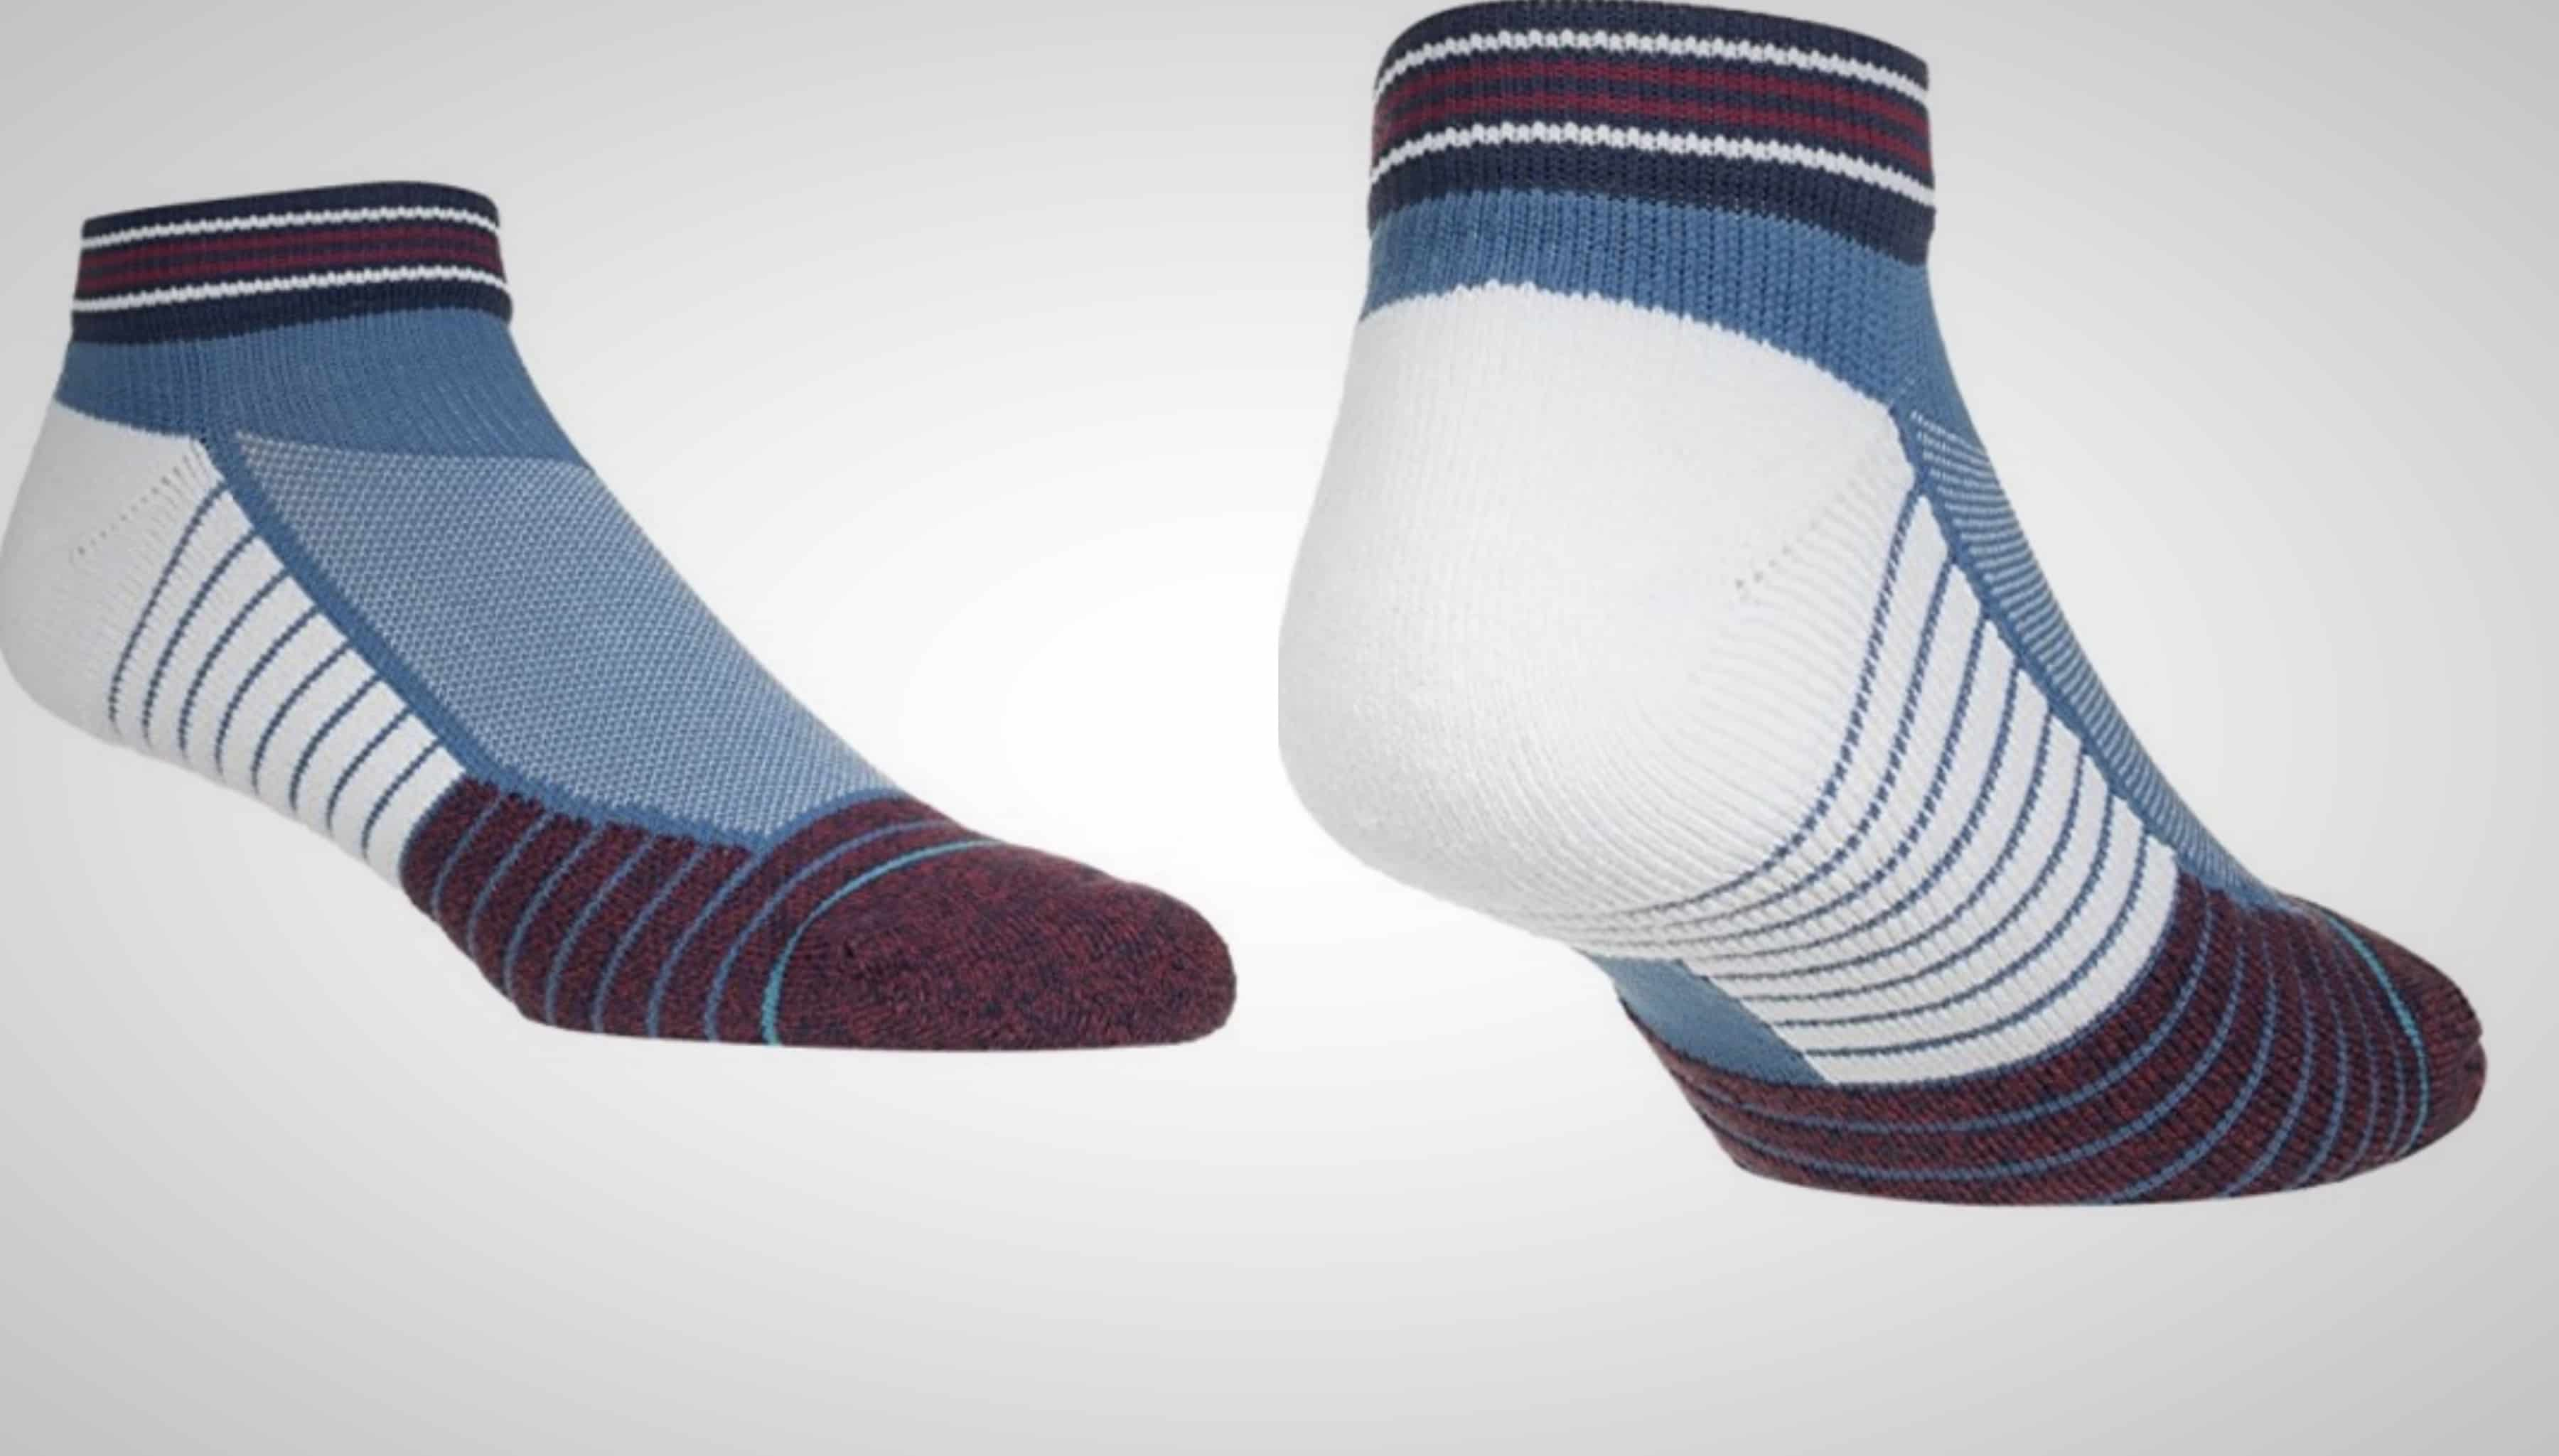 0637218da8939 8 Best Athletic Socks For Men With An Active Lifestyle - The Daily Want